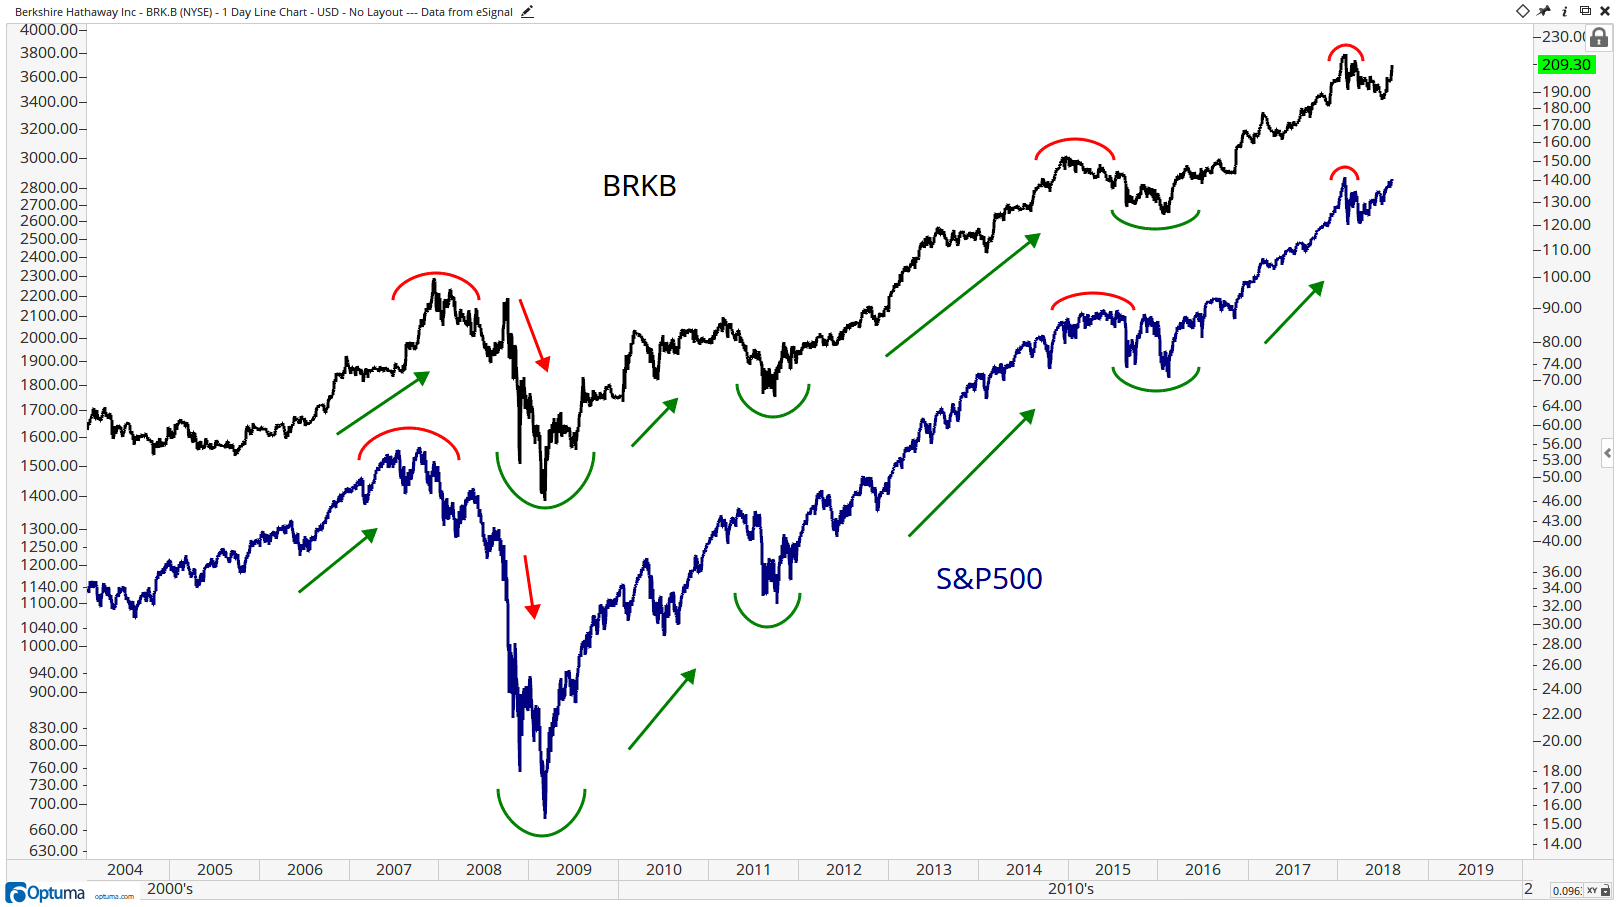 Technical chart showing Berkshire Hathaway Inc. (BRK.B) stock vs. the S&P 500